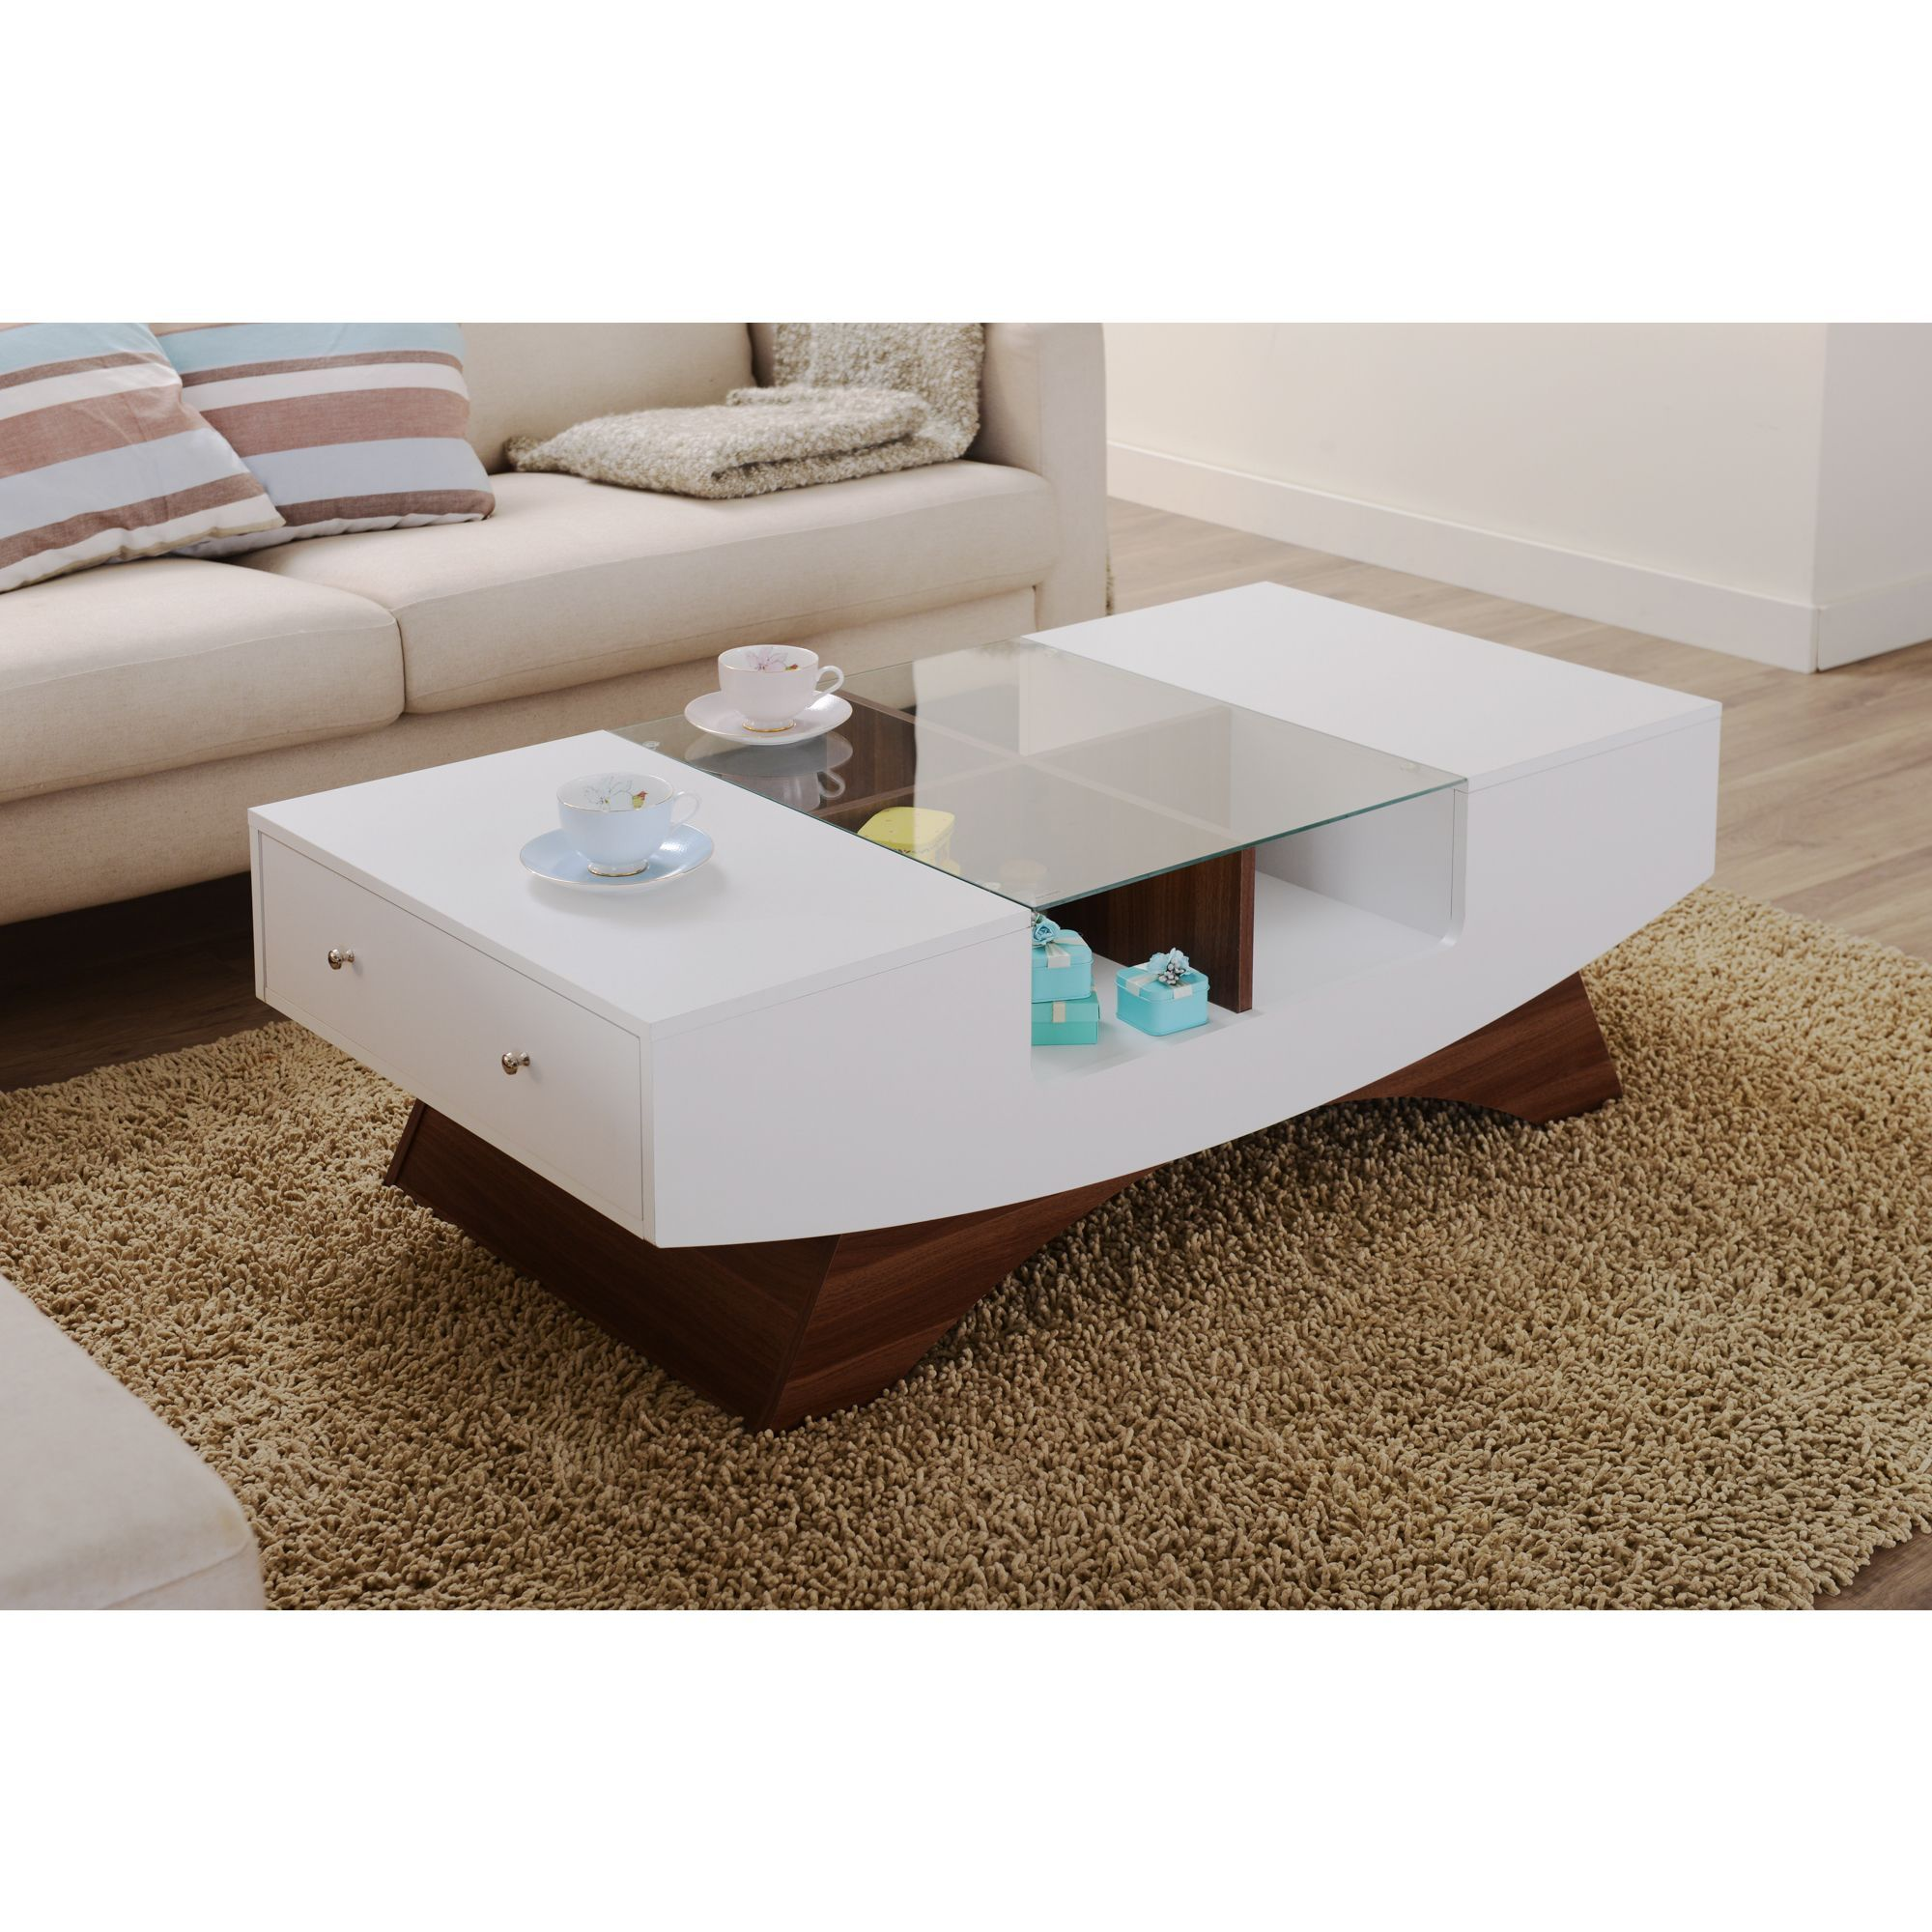 Overstock Com Online Shopping Bedding Furniture Electronics Jewelry Clothing More In 2021 Coffee Table White Coffee Table Modern Wood Coffee Table [ 2000 x 2000 Pixel ]